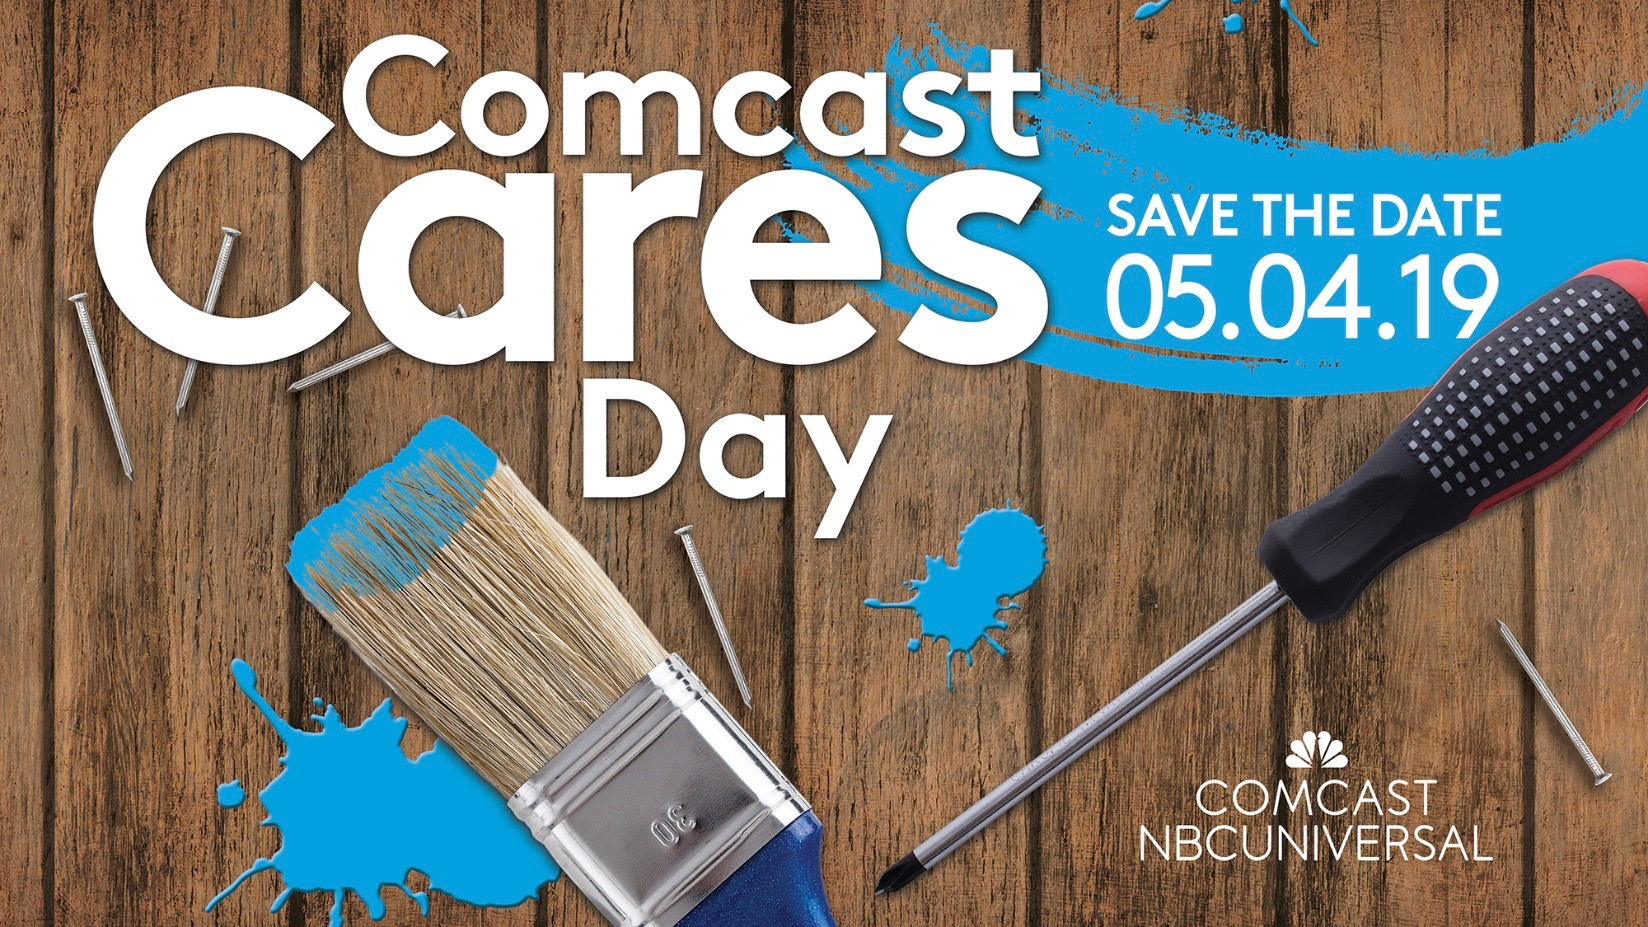 comcast cares days